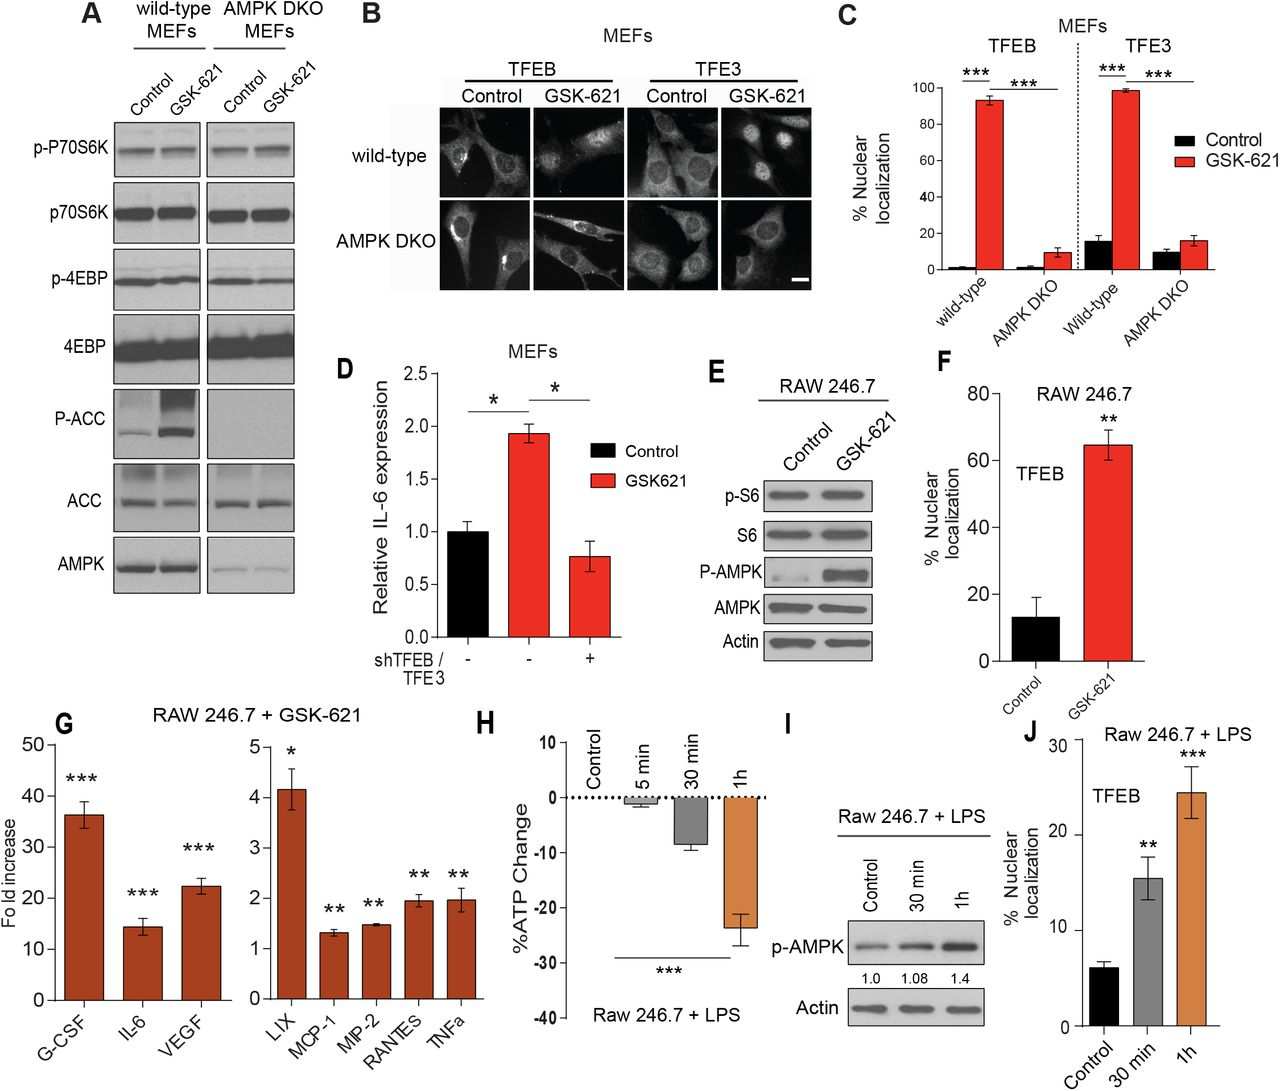 AMPK regulates TFEB/TFE3-mediated innate immune response (A) Immunoblot of wild-type or AMPKα1/α2 double knock out (DKO) MEFs stimulated with the AMPK activator; GSK-621 (30 μM) for 1 h. (B) Representative images of TFEB and TFE3 staining in wild-type and AMPK DKO MEFs before and after treatment with GSK-621 (30 μM) for 1 h. Scale bars represent 20 μm. (C) Quantification of the percentage of cells showing TFEB and TFE3 nuclear staining of the conditions described in (B). (D) Relative IL-6 mRNA levels measured by qRT-PCR in wild-type MEFs transfected with EV or shTFEB/TFE3, stimulated with GSK-621 for 2 h. Data represents the average of three independent experiments, each done in triplicates ± SEM. Significance was determined using one-way ANOVA with the application of Bonferroni correction ( * p